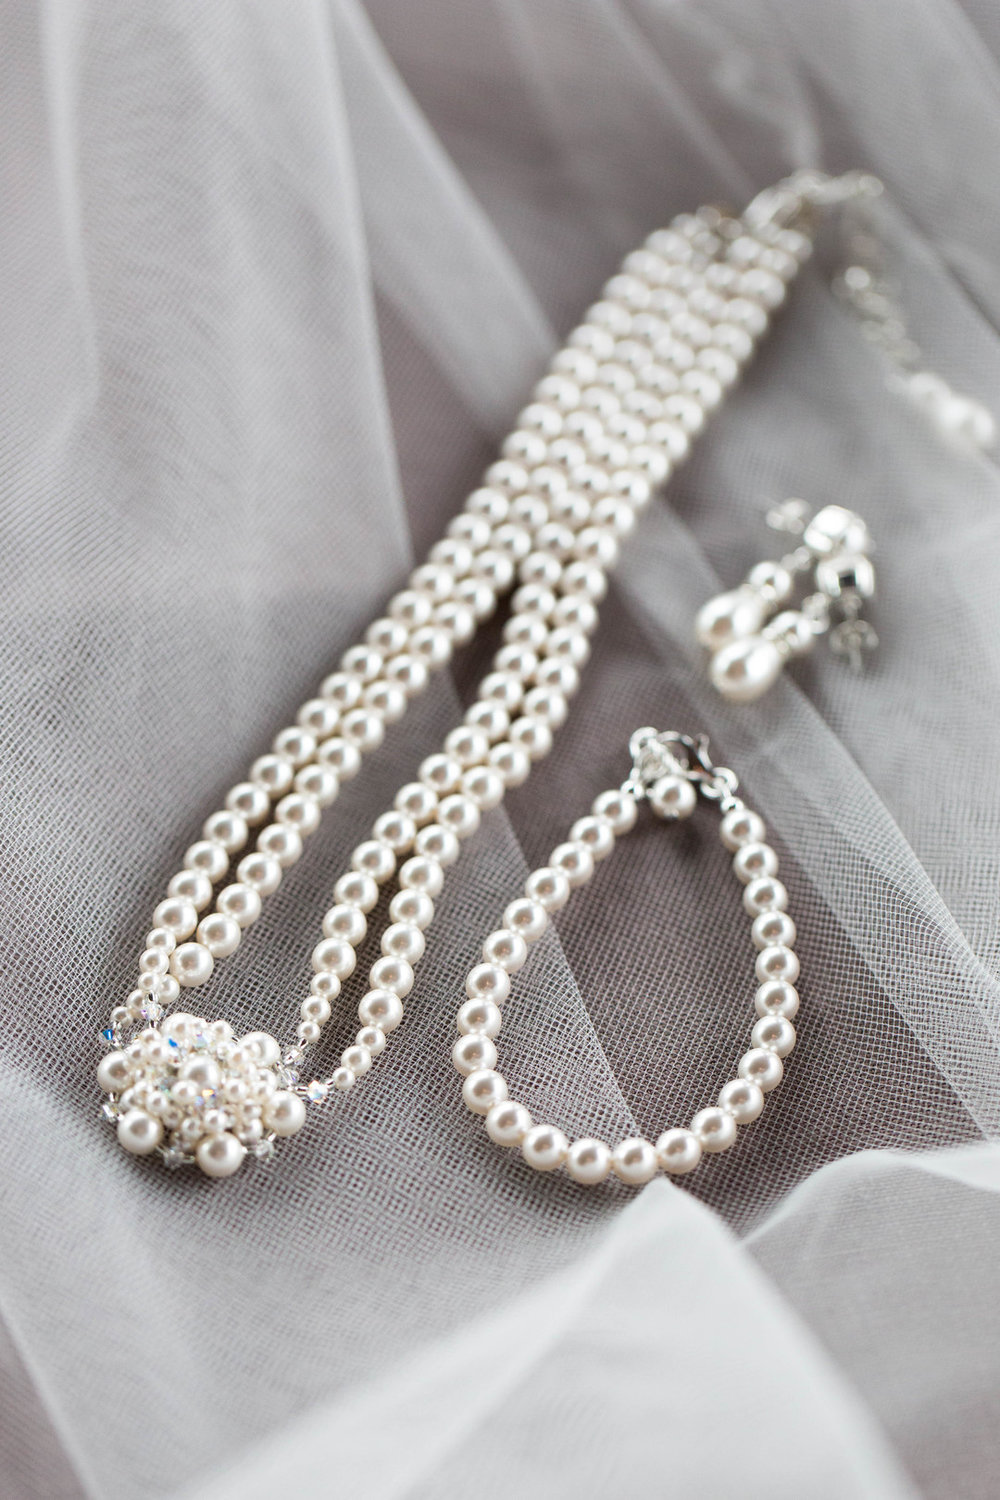 Pearl Bridal Wedding Accessories Chicago Wedding Meghan McCarthy Photography